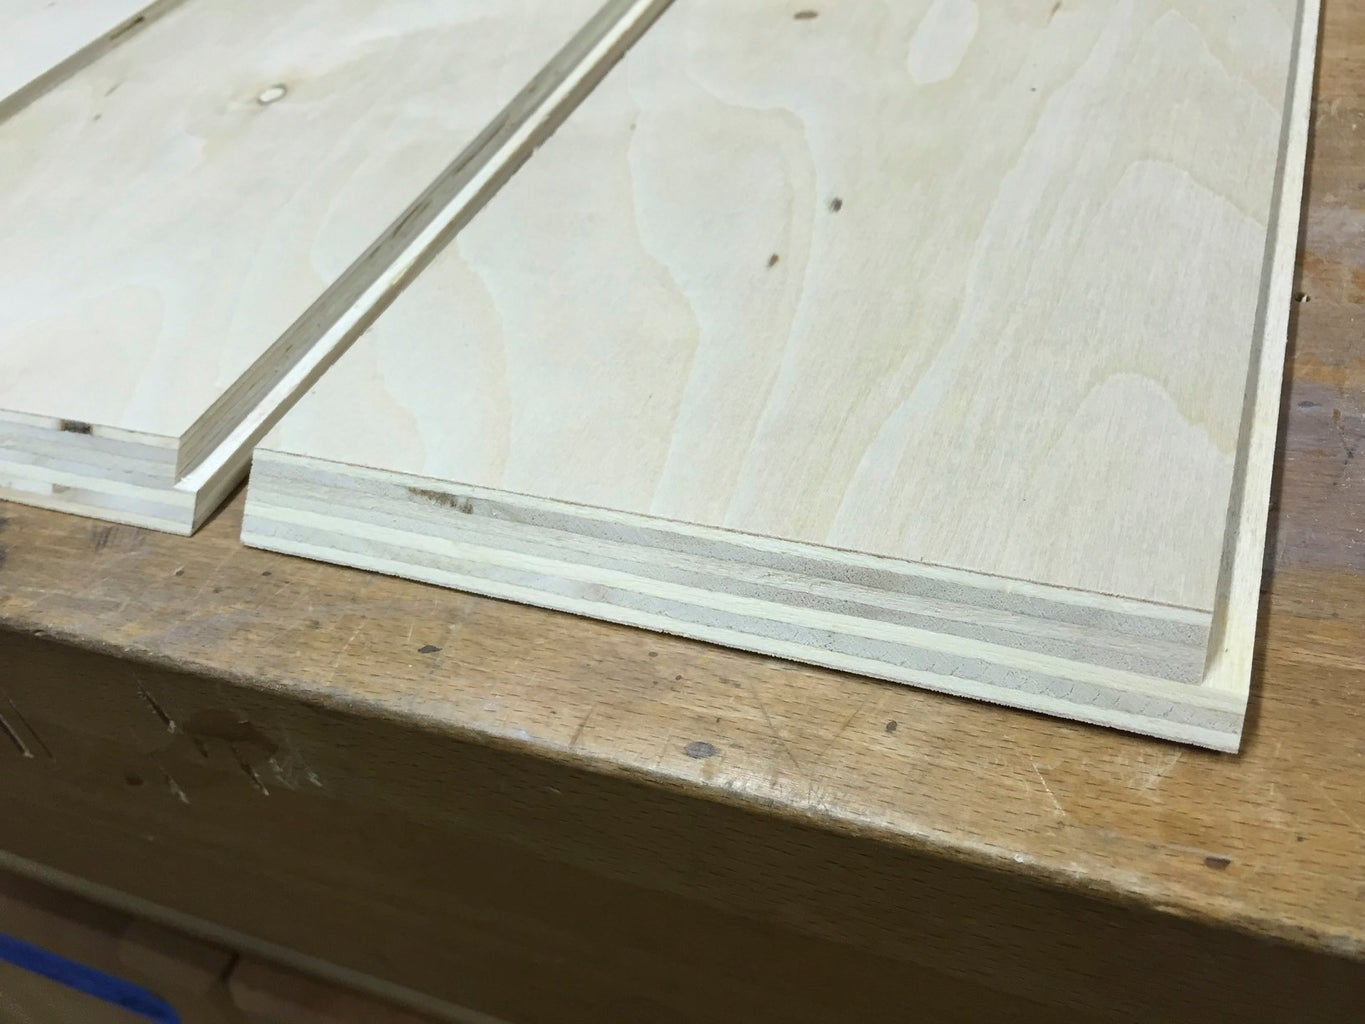 Box Joints and Back Panel